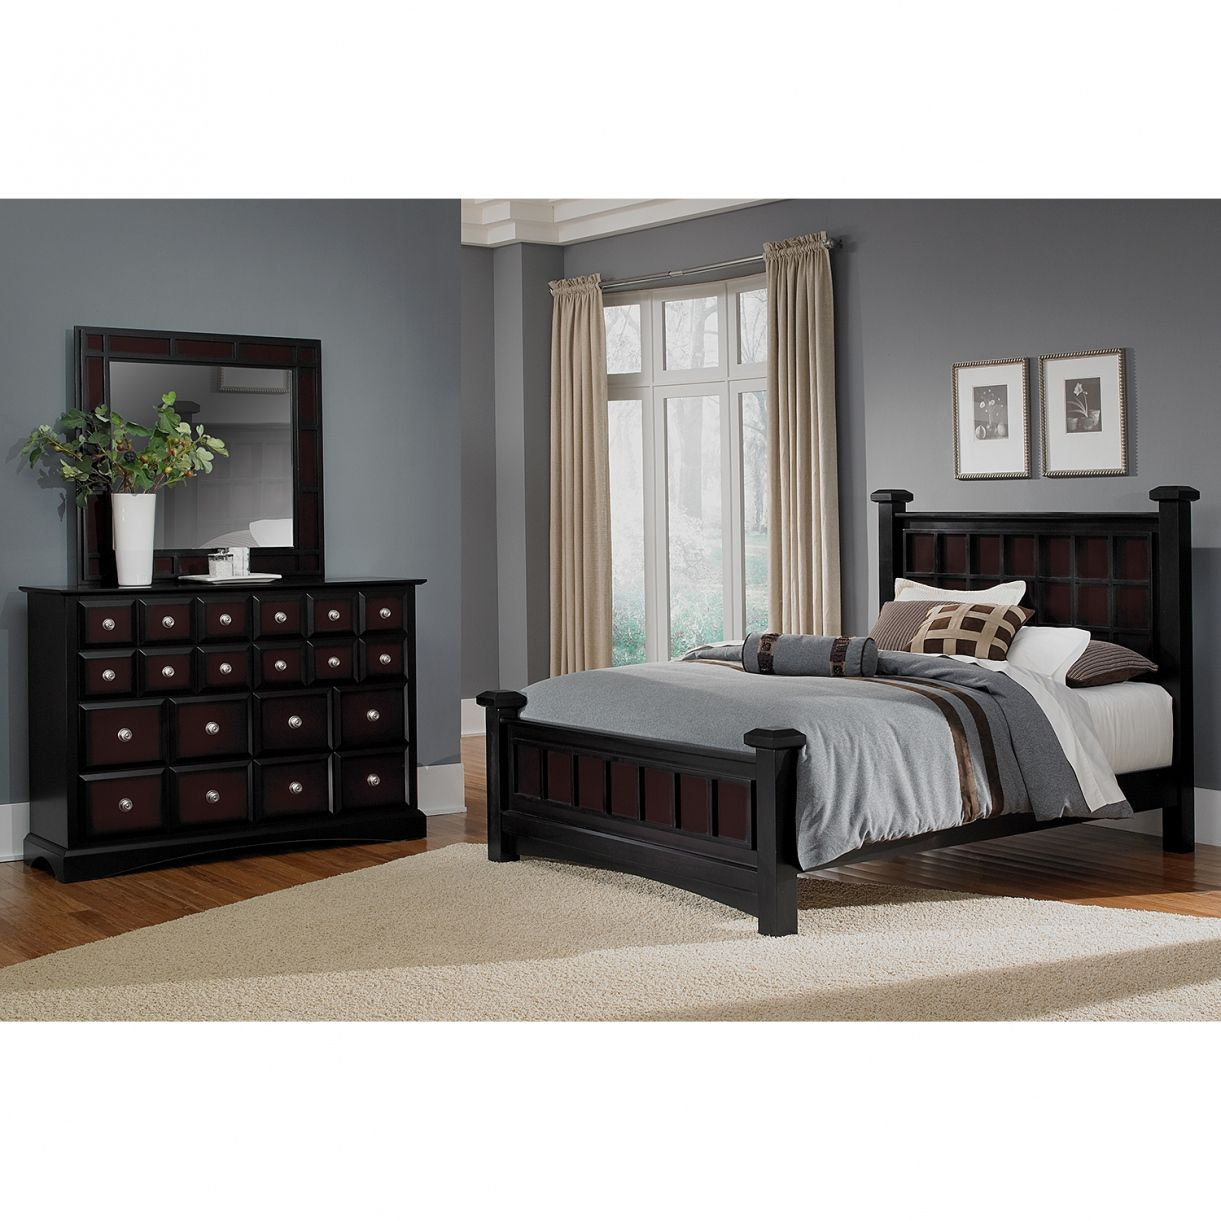 City Furniture Bedroom Sets - Interior Paint Colors Bedroom Check ...